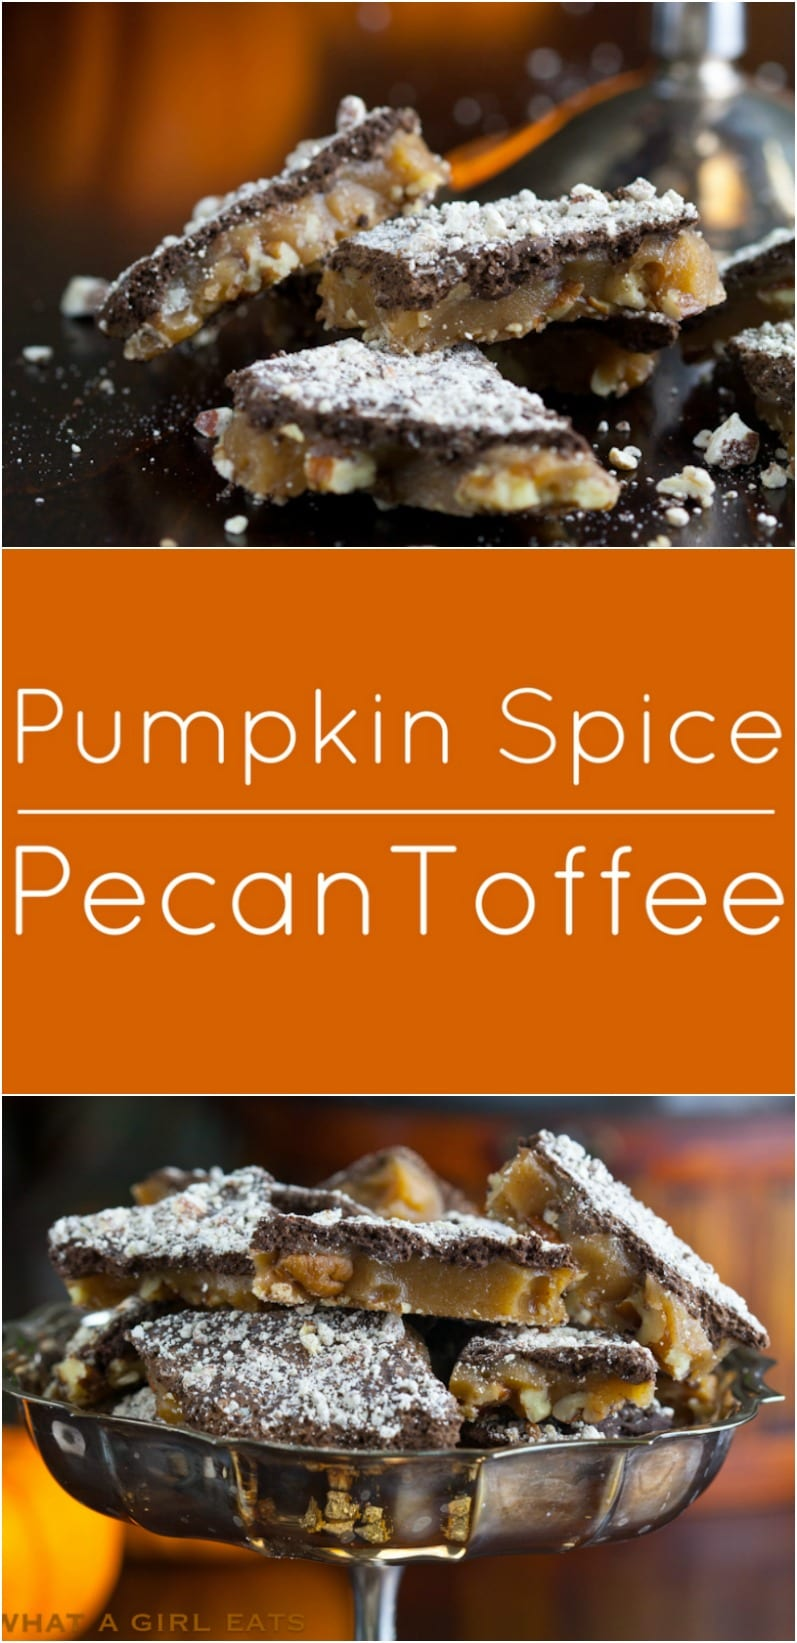 Pumpkin Spice Pecan Toffee. Perfect for autumn!